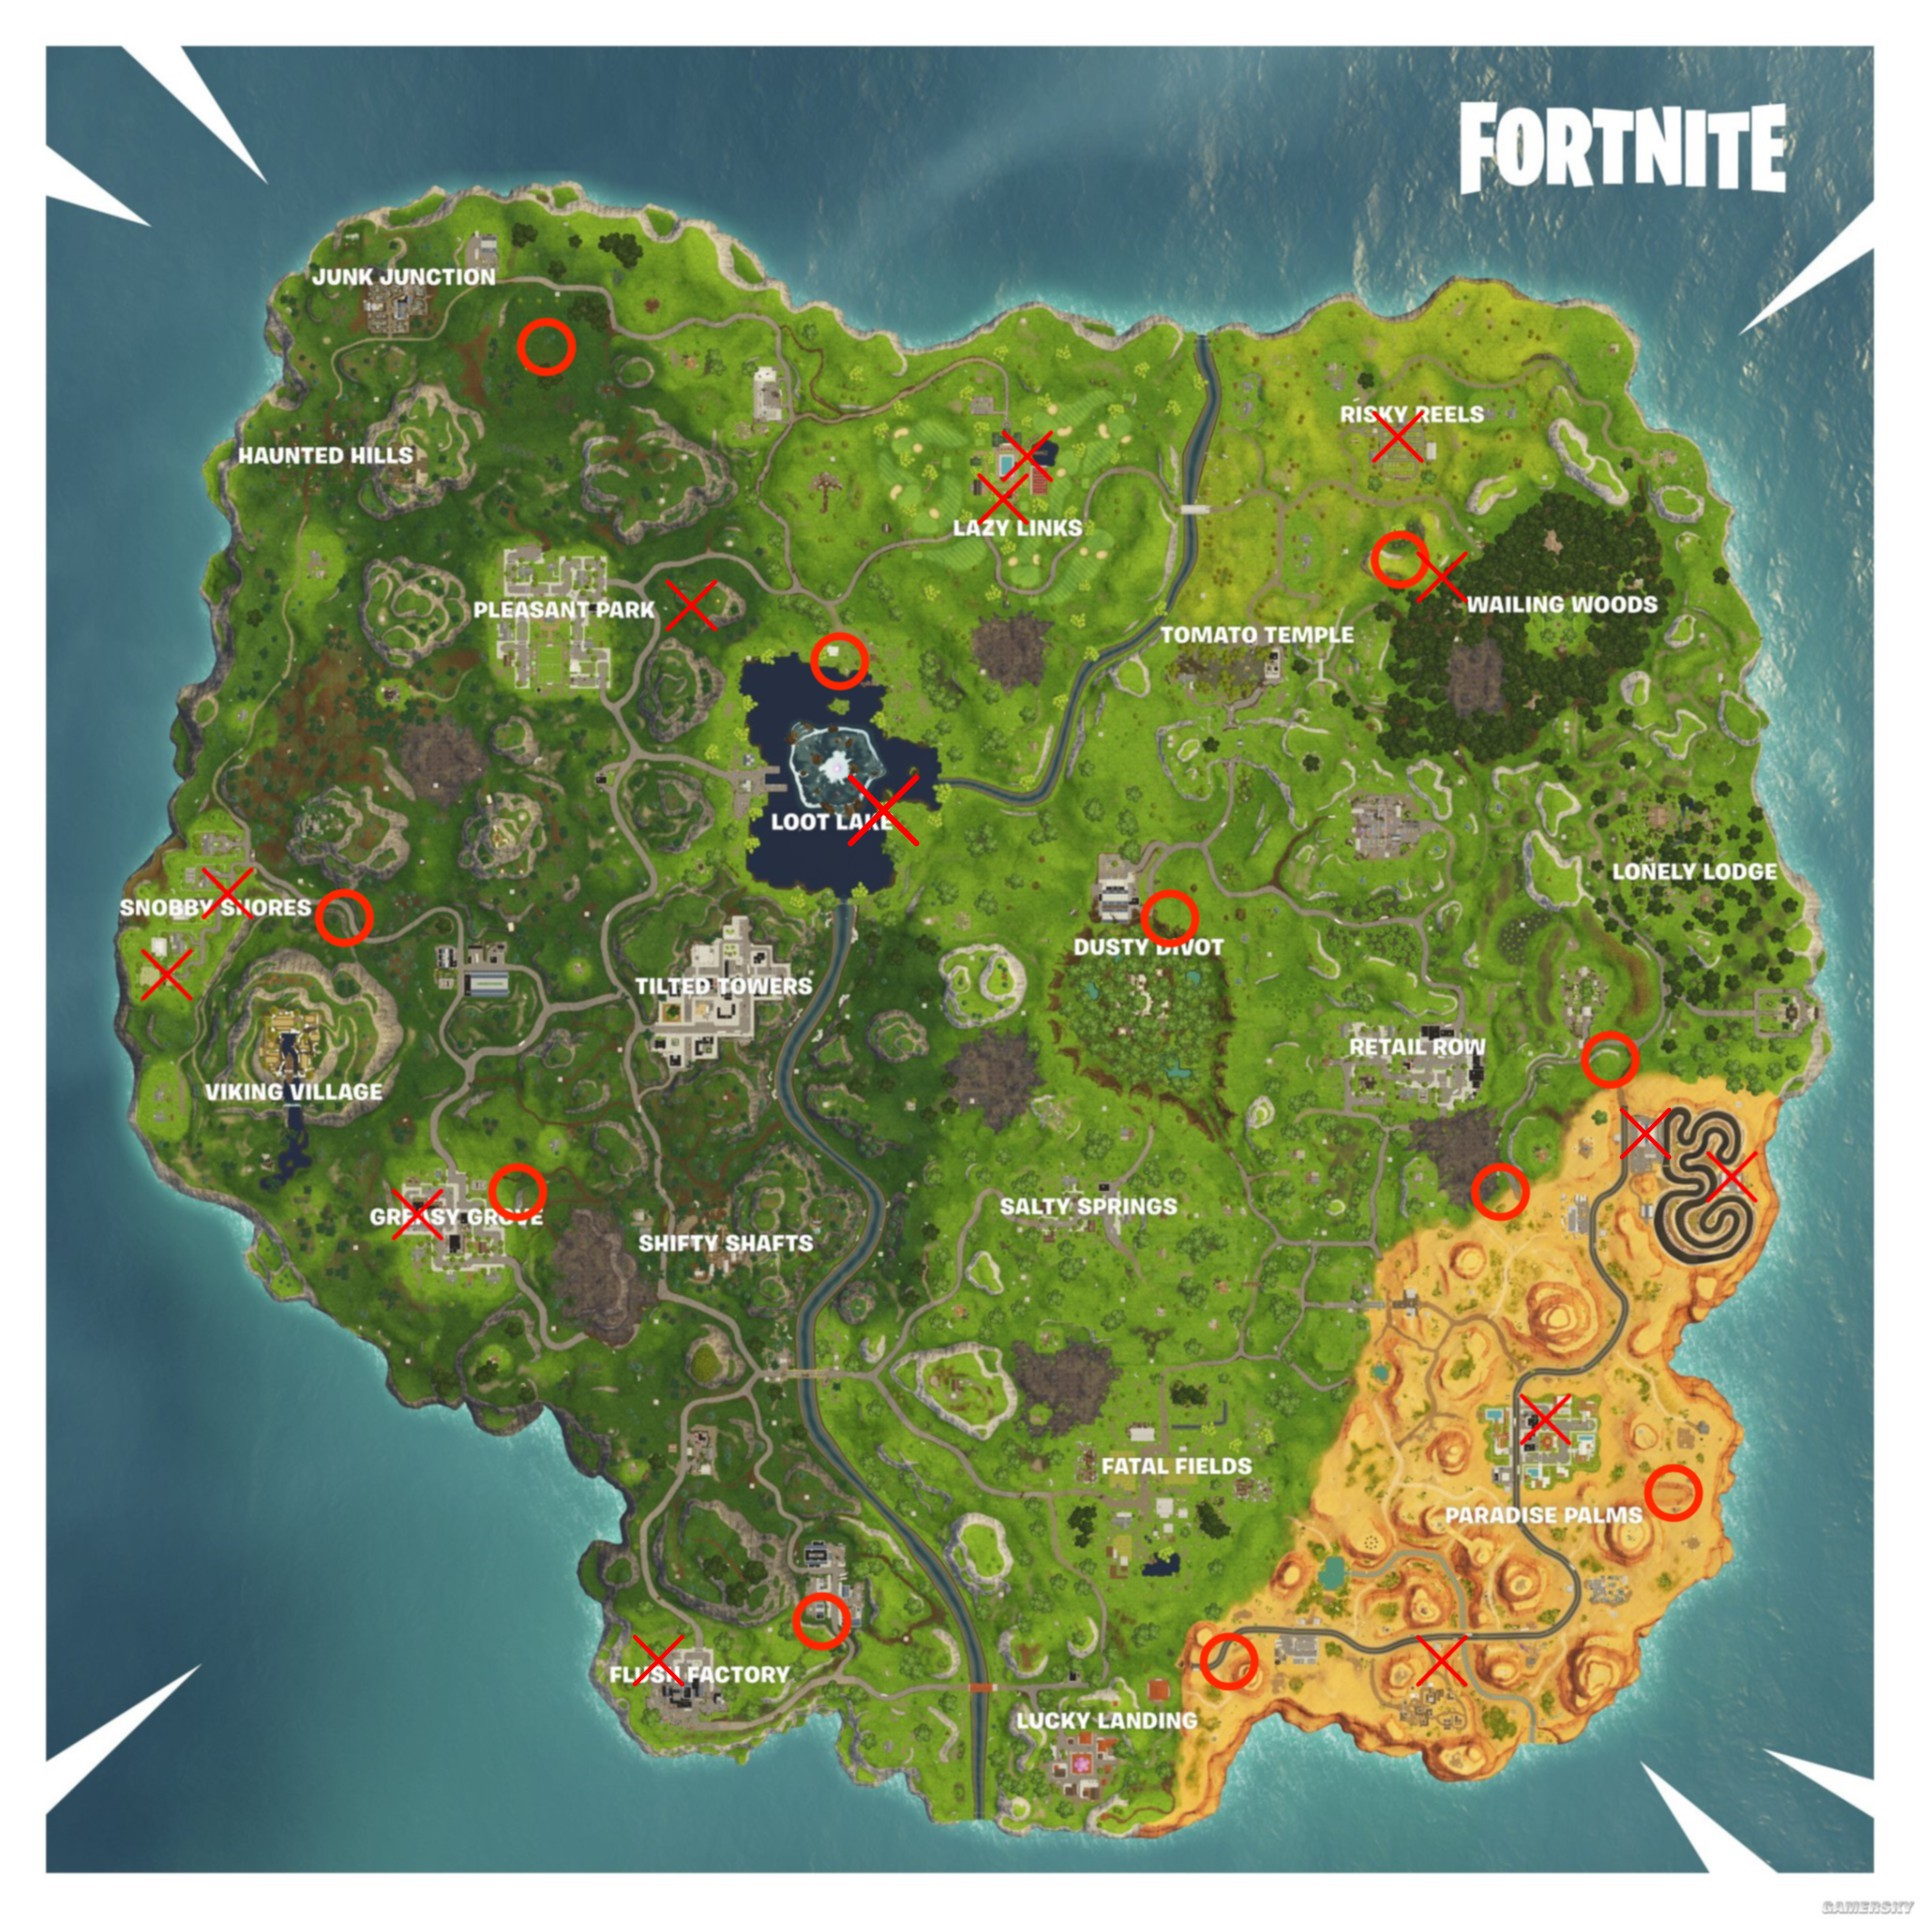 Fortnite Flaming Hoop Locations Map And Video Guide For Week 5